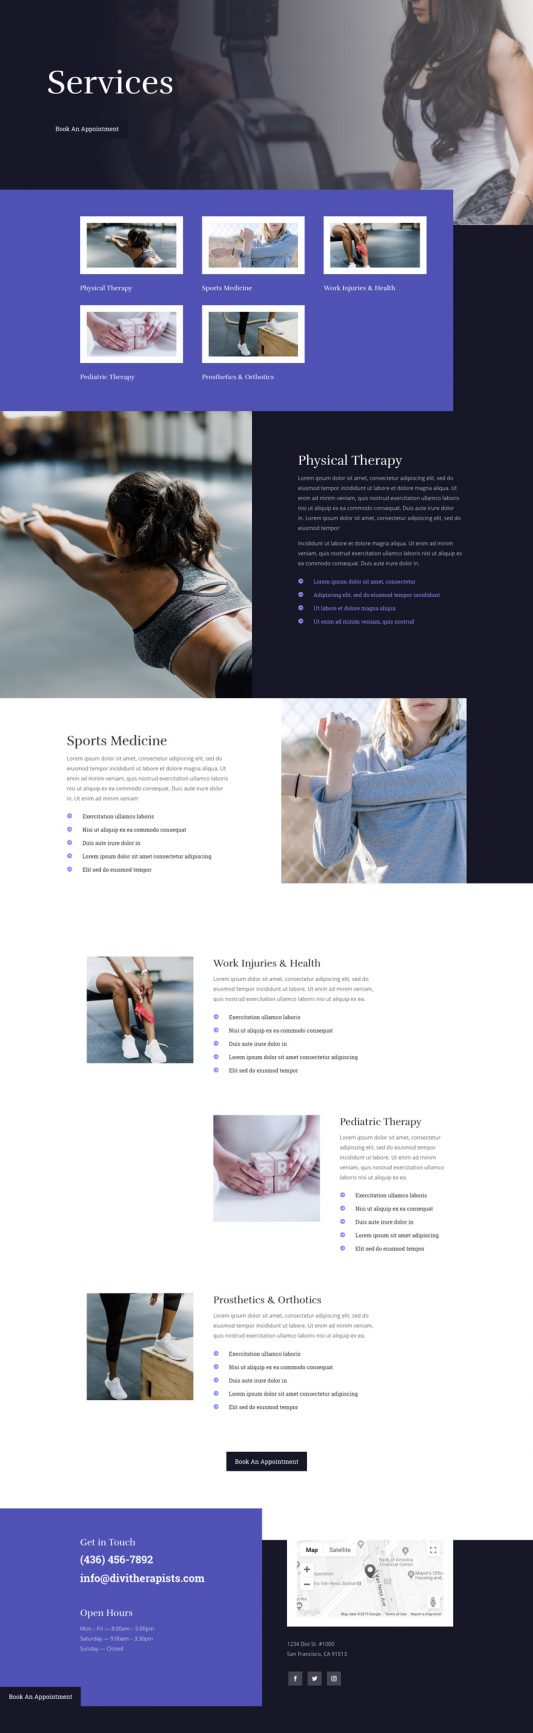 Physical Therapy Web Design 6